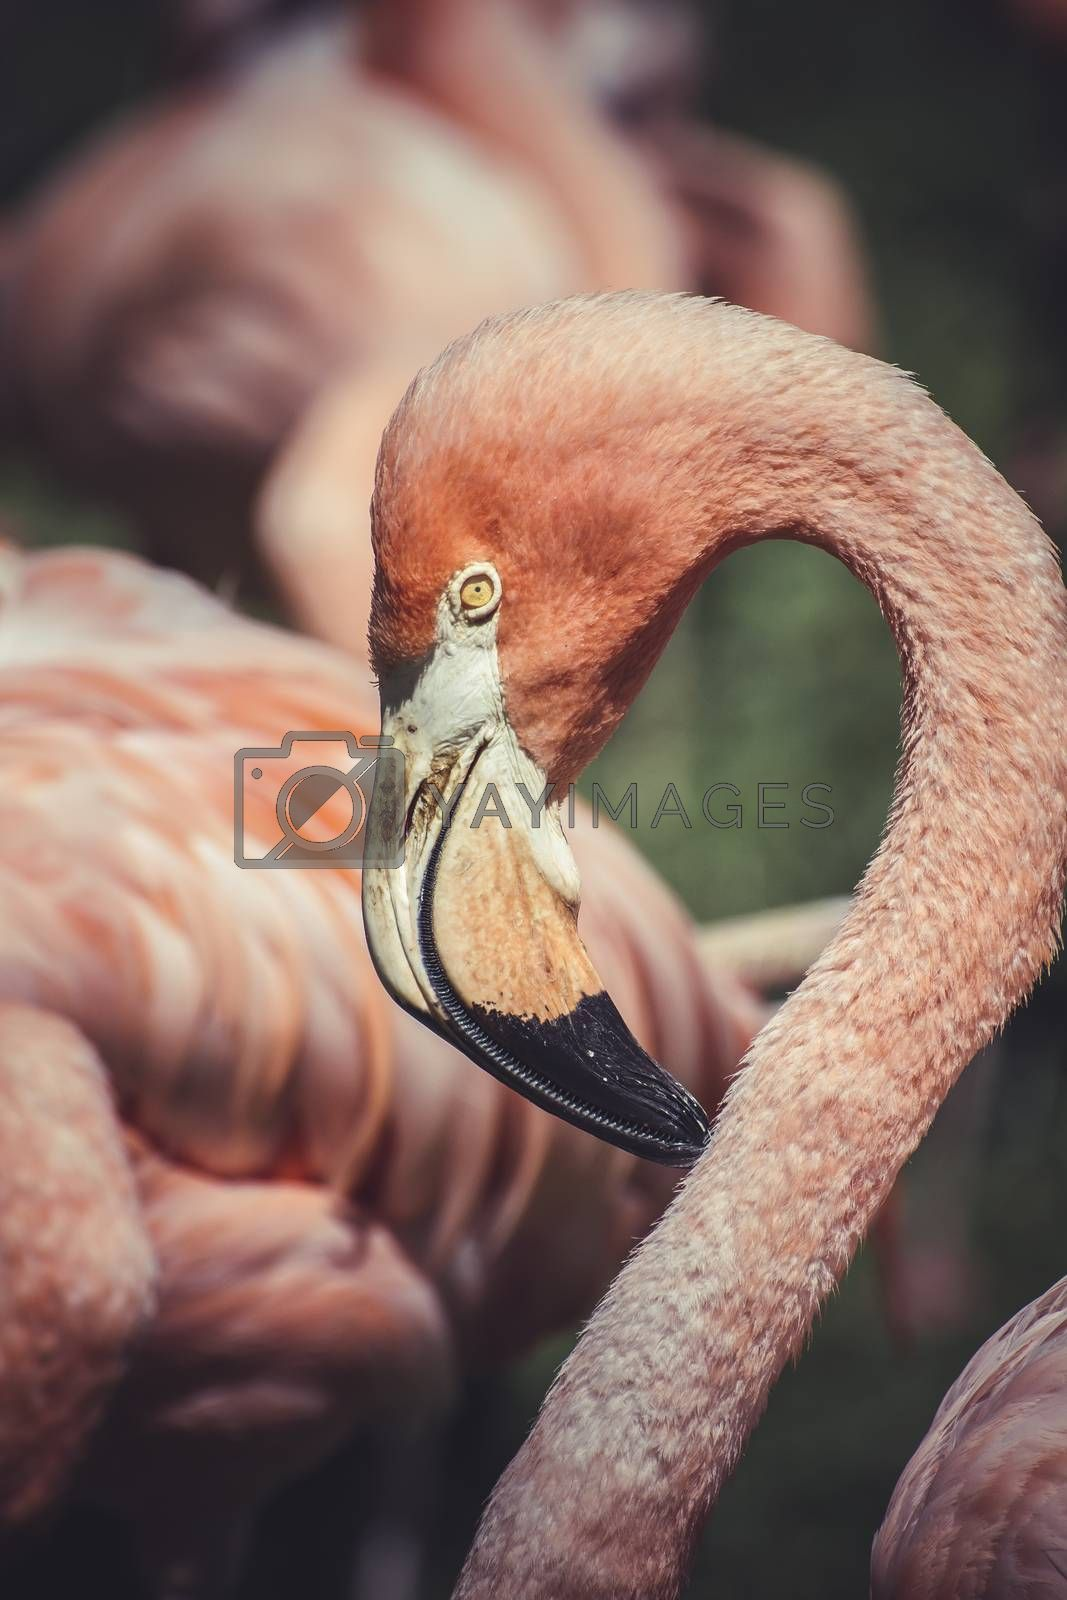 caribbean pink , detail of flamingo head with long neck